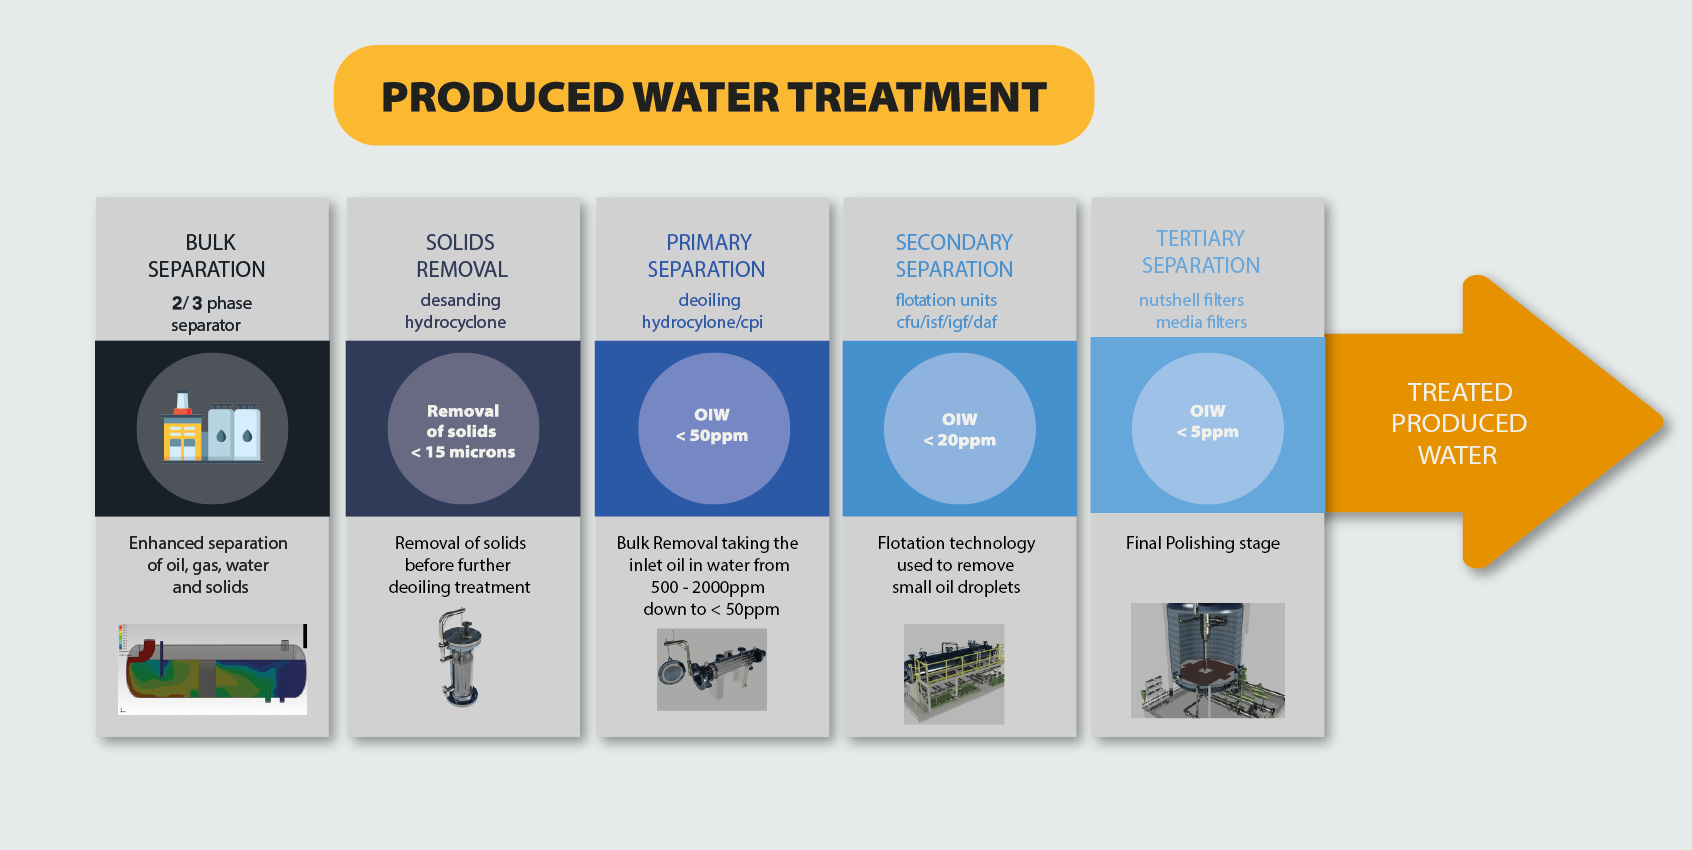 Produced Water Treatment Flow Chart